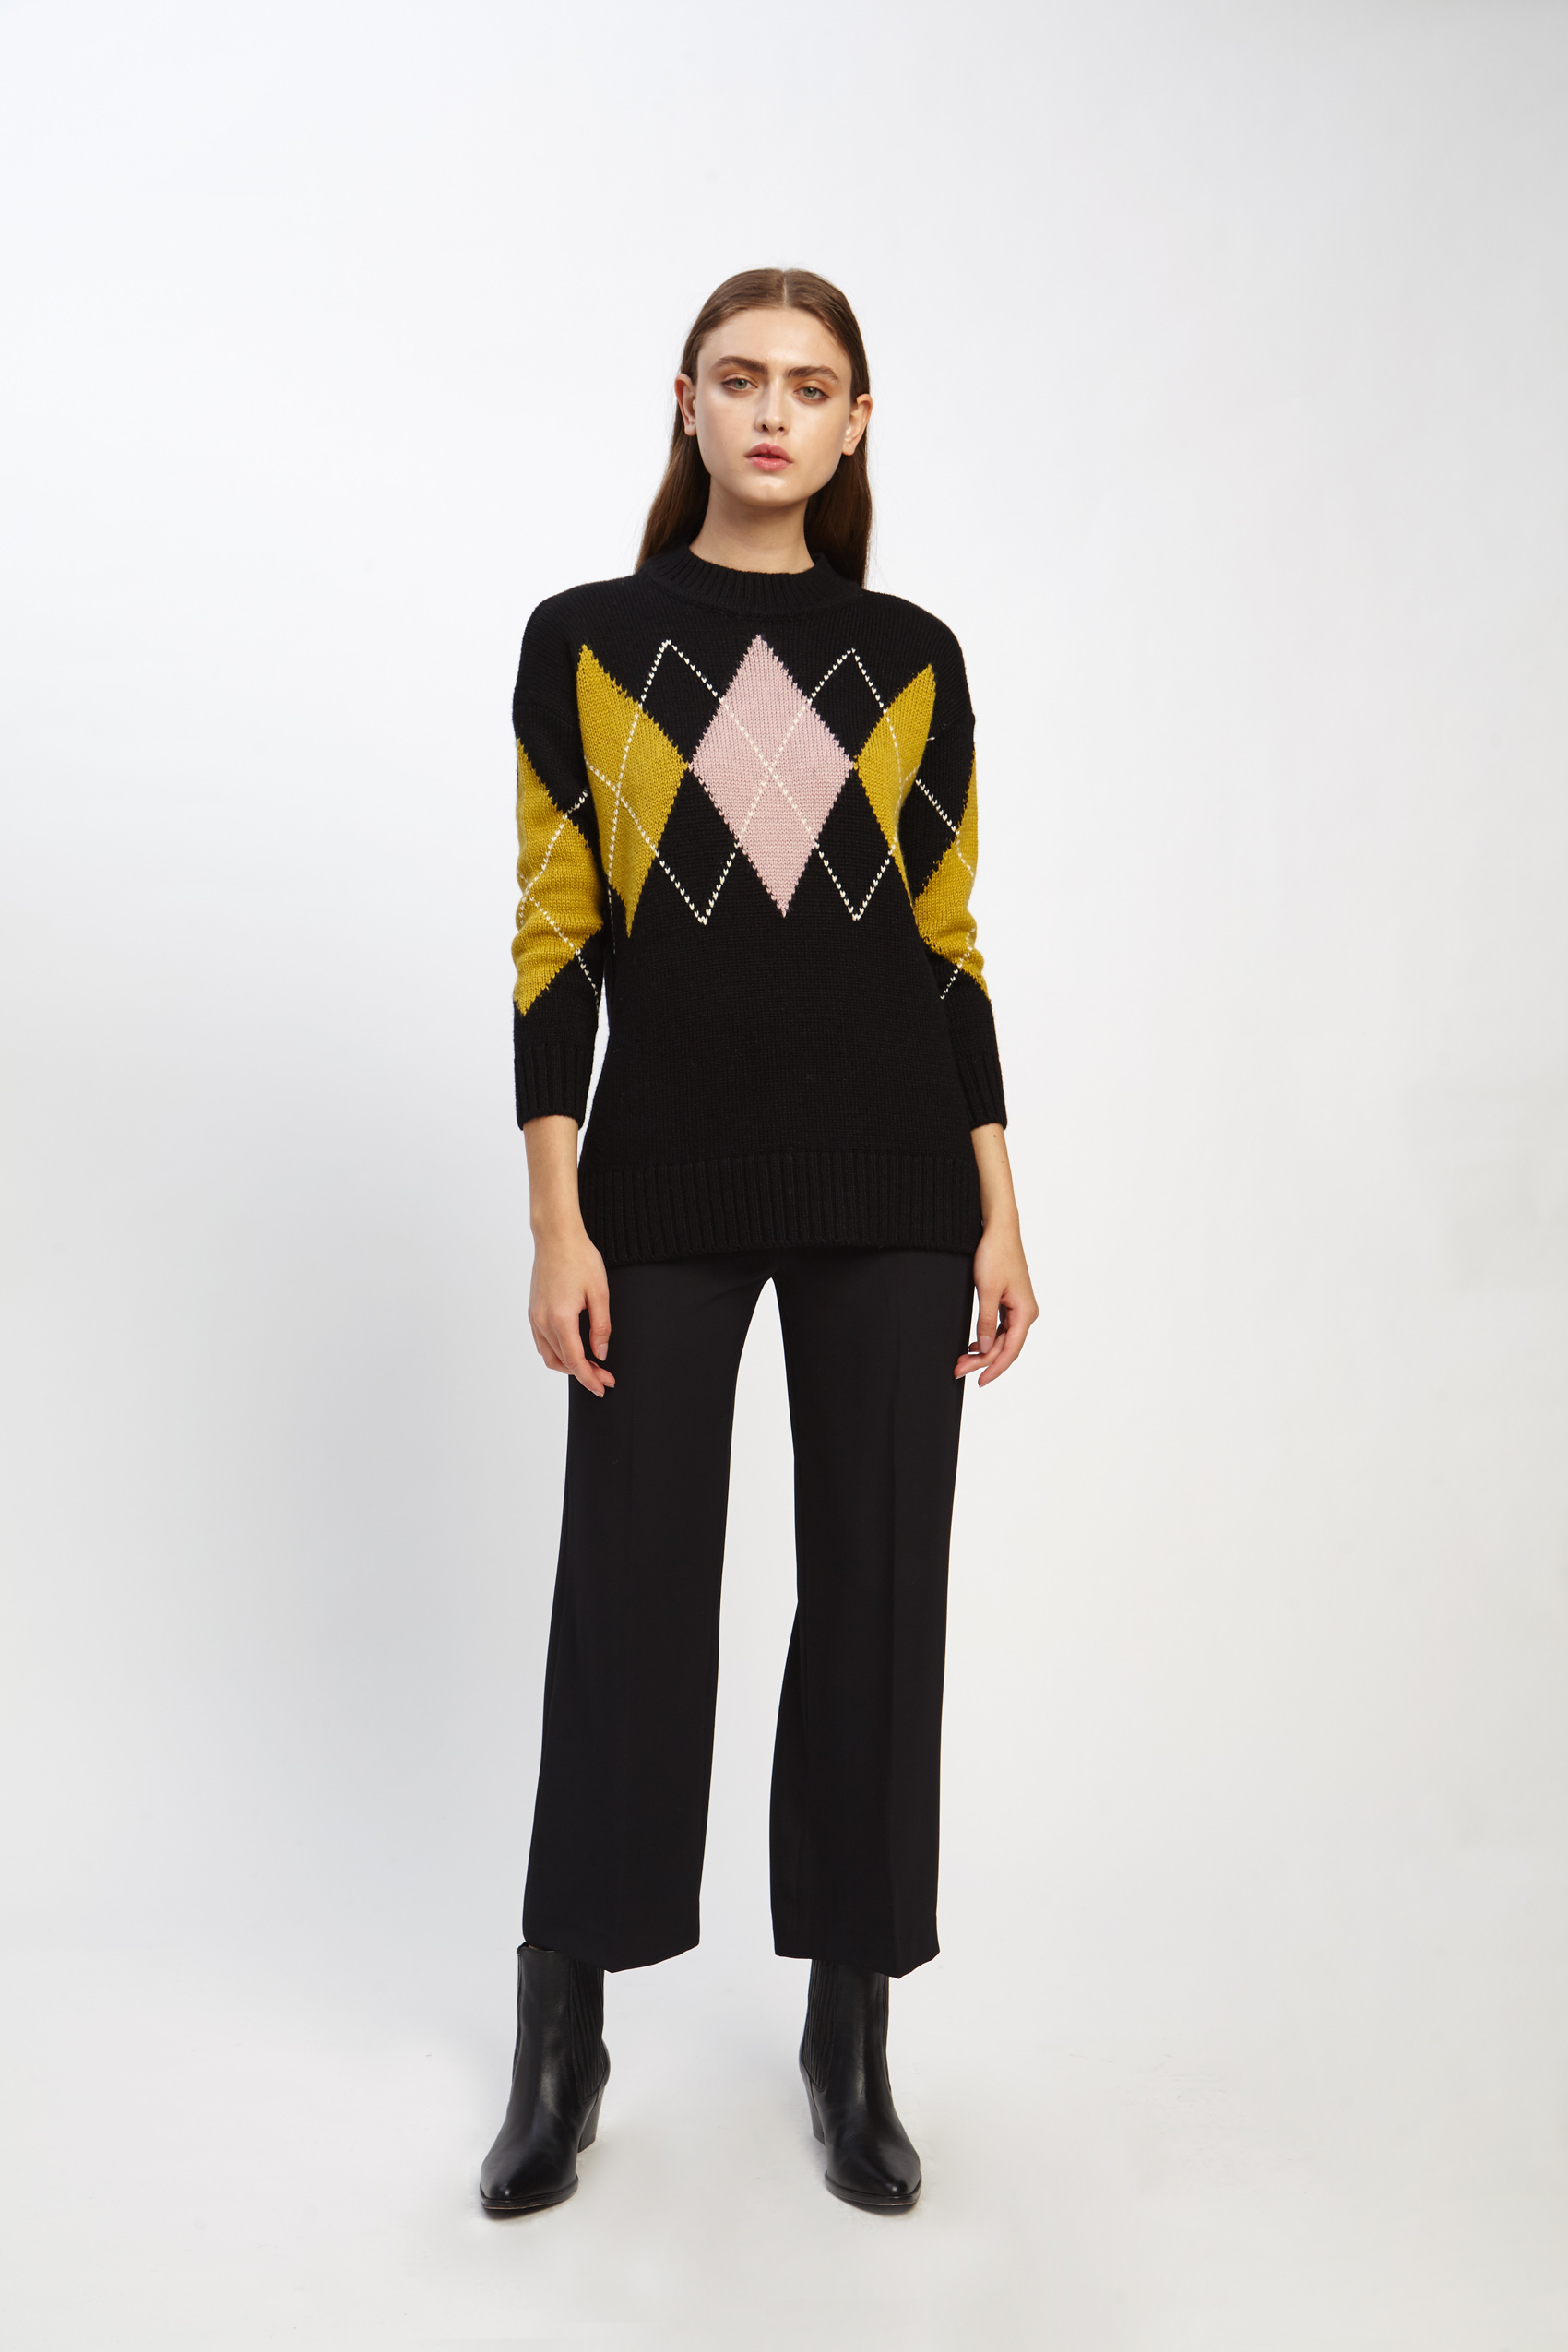 awada_sweater-emmanuelle_44-16-2020__picture-2513